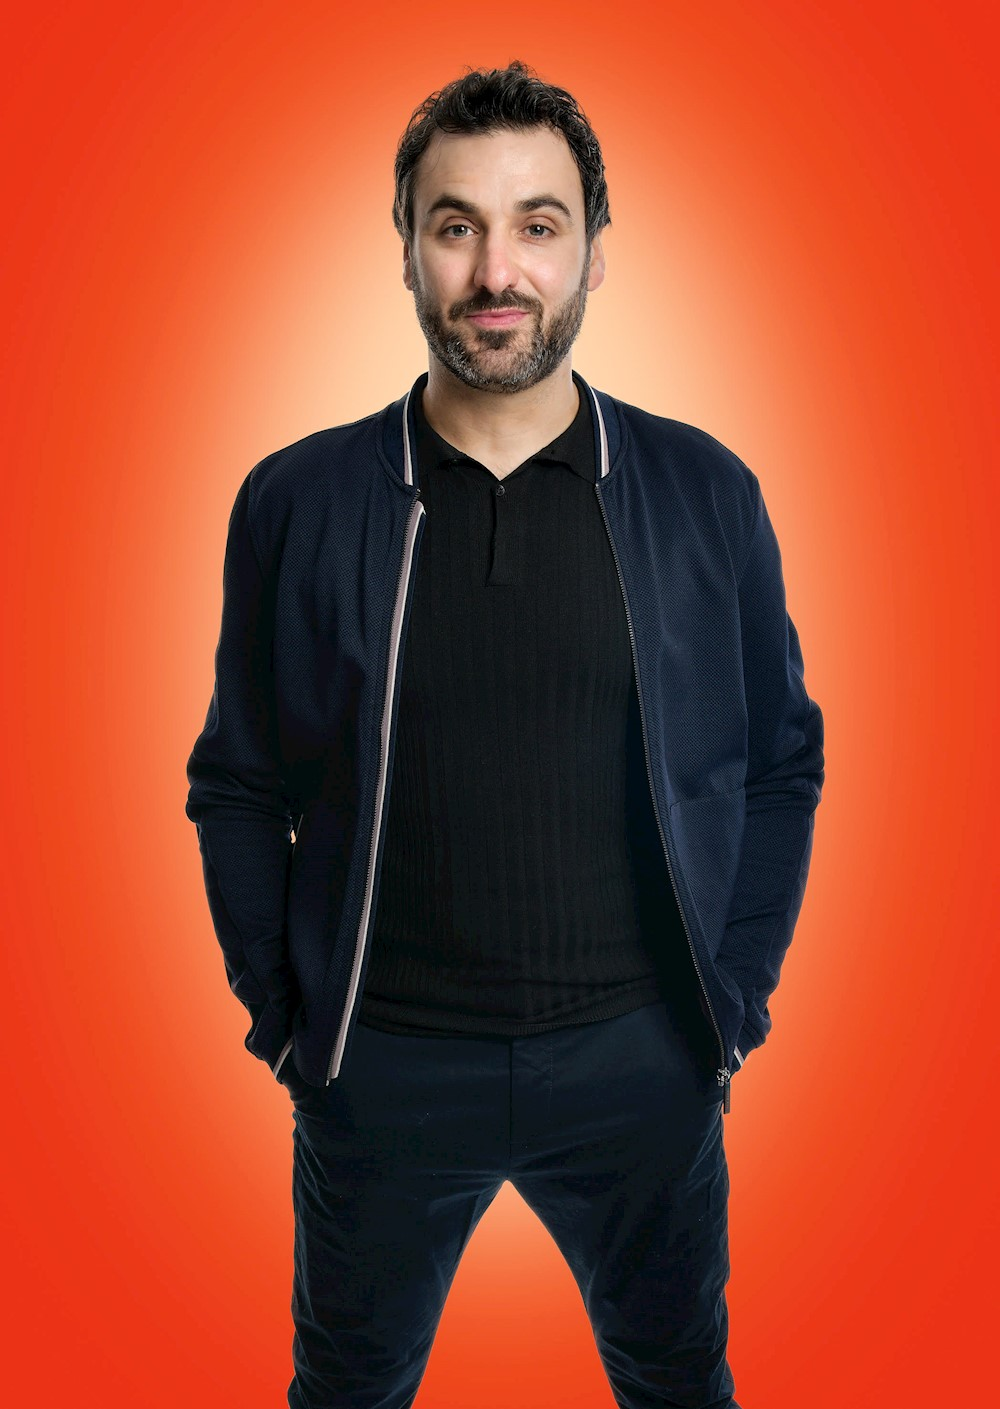 Patrick Monahan: From The Bottom, Now I'm Here